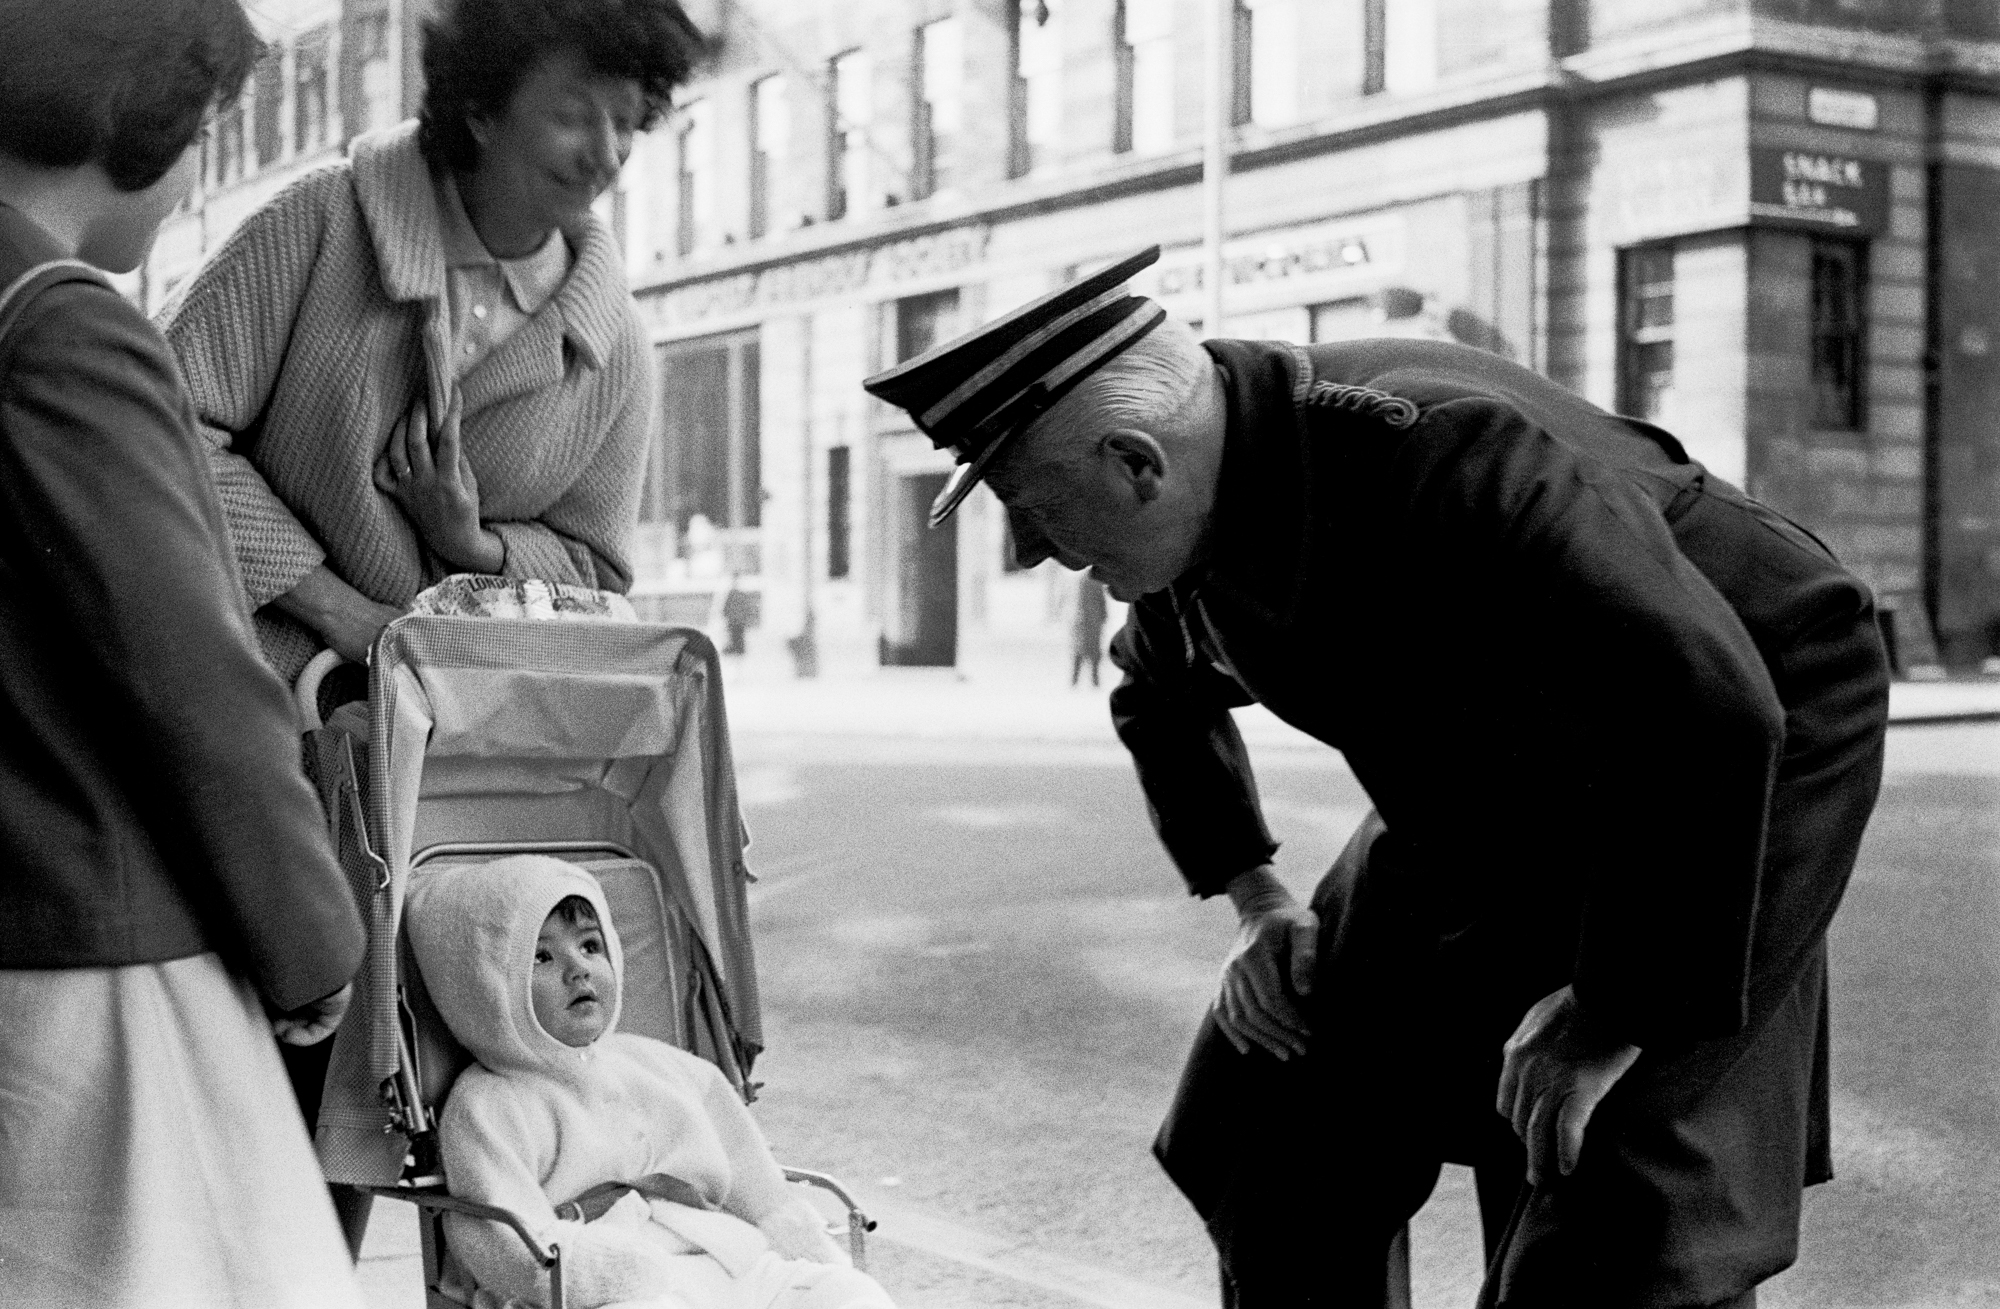 LONDON LIFE - The Doorman and the Baby - early 1960's